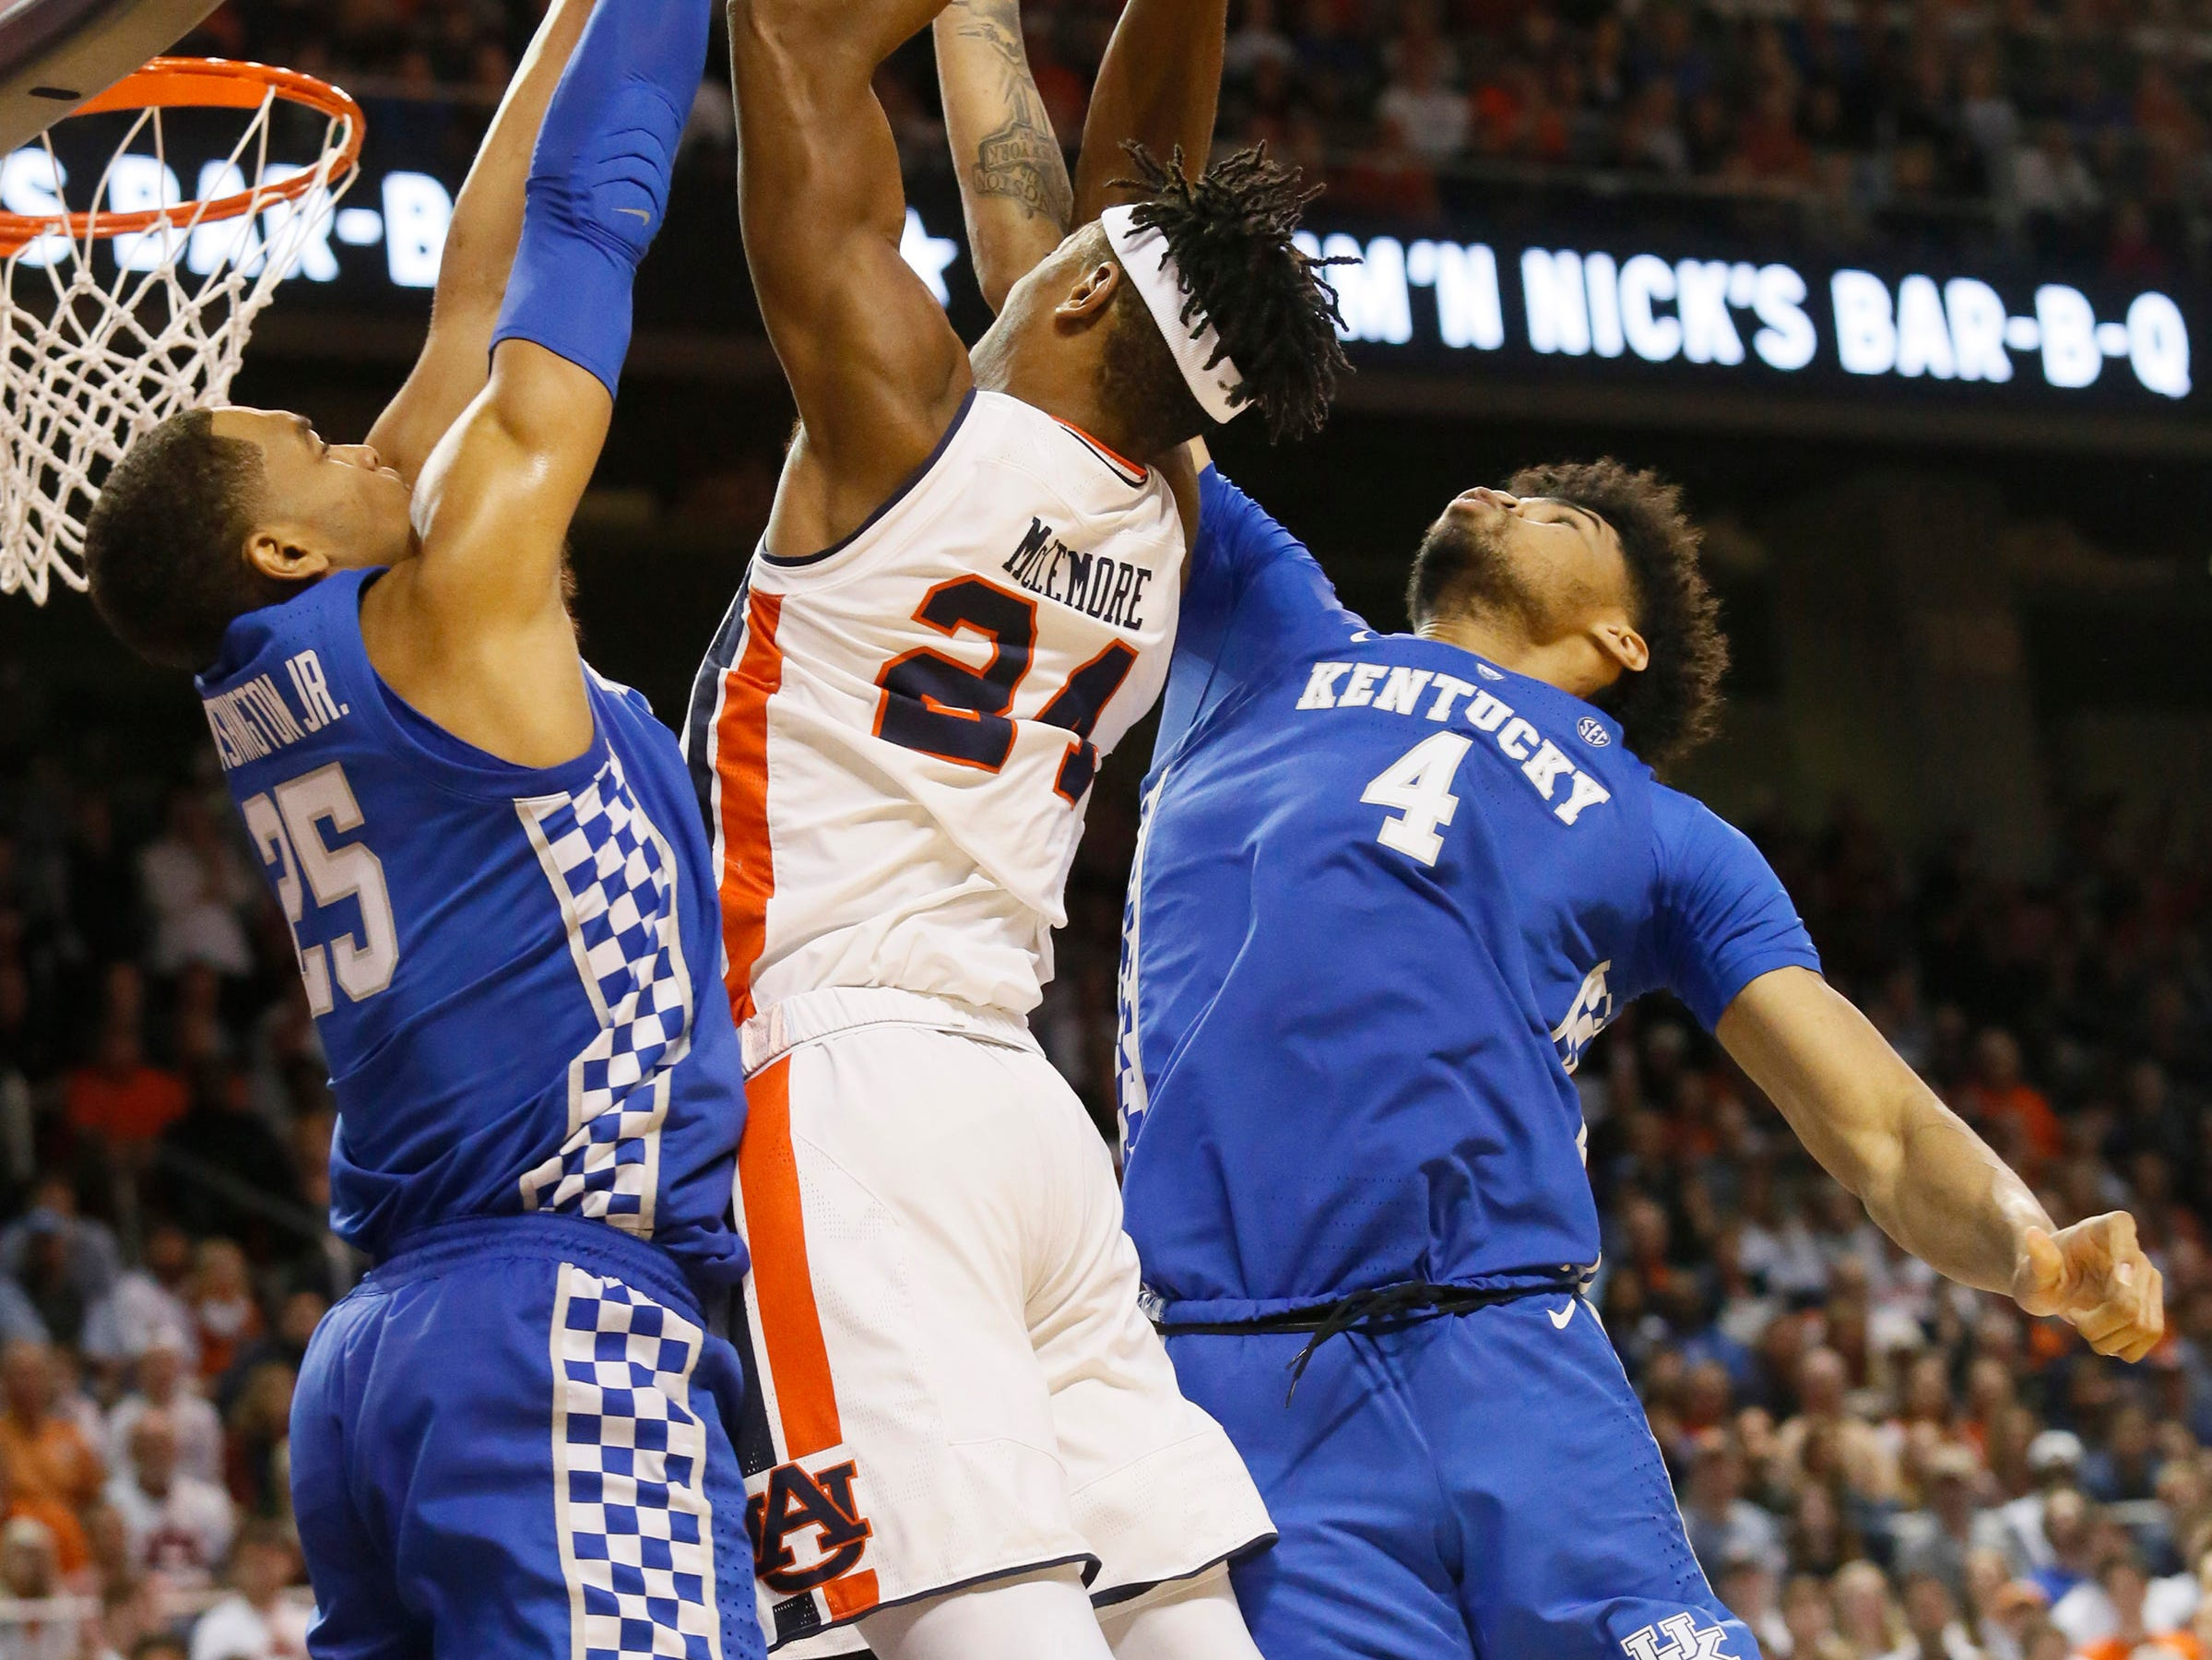 Jan 19, 2019; Auburn, AL, USA;  Kentucky Wildcats forwards PJ Washington (25) and Nick Richards (4) block Auburn Tigers forward Anfernee McLemore (24) during the second half at Auburn Arena. Mandatory Credit: John Reed-USA TODAY Sports